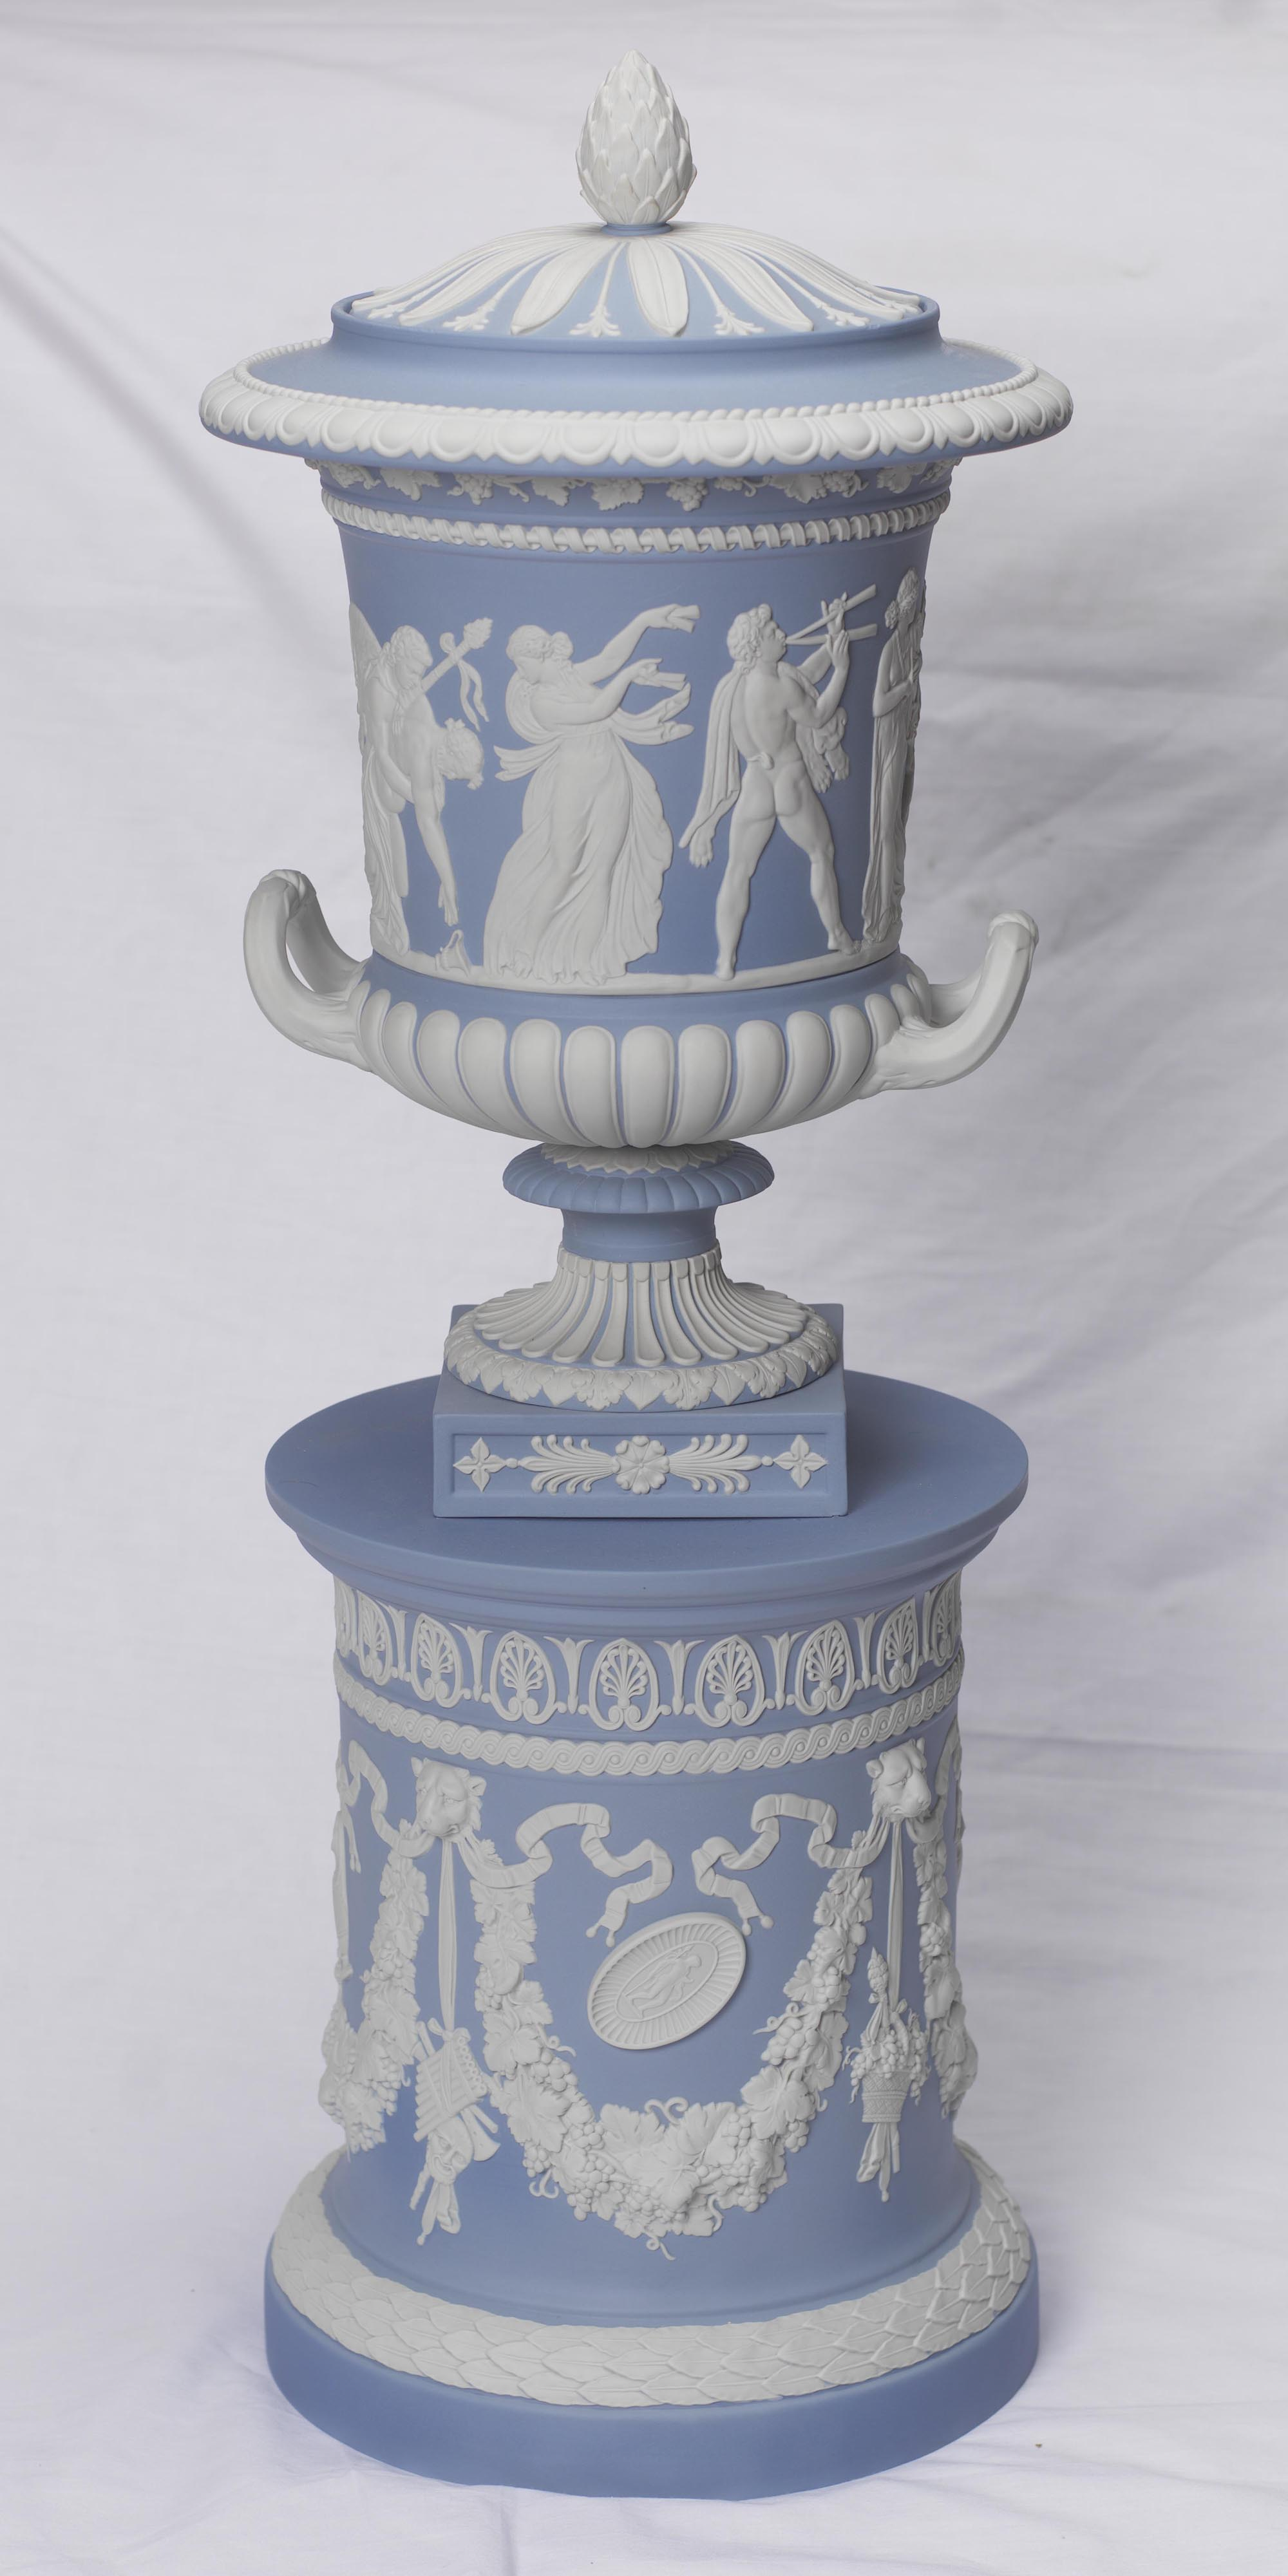 a photo of a blue urn decorated with classical figures in relief